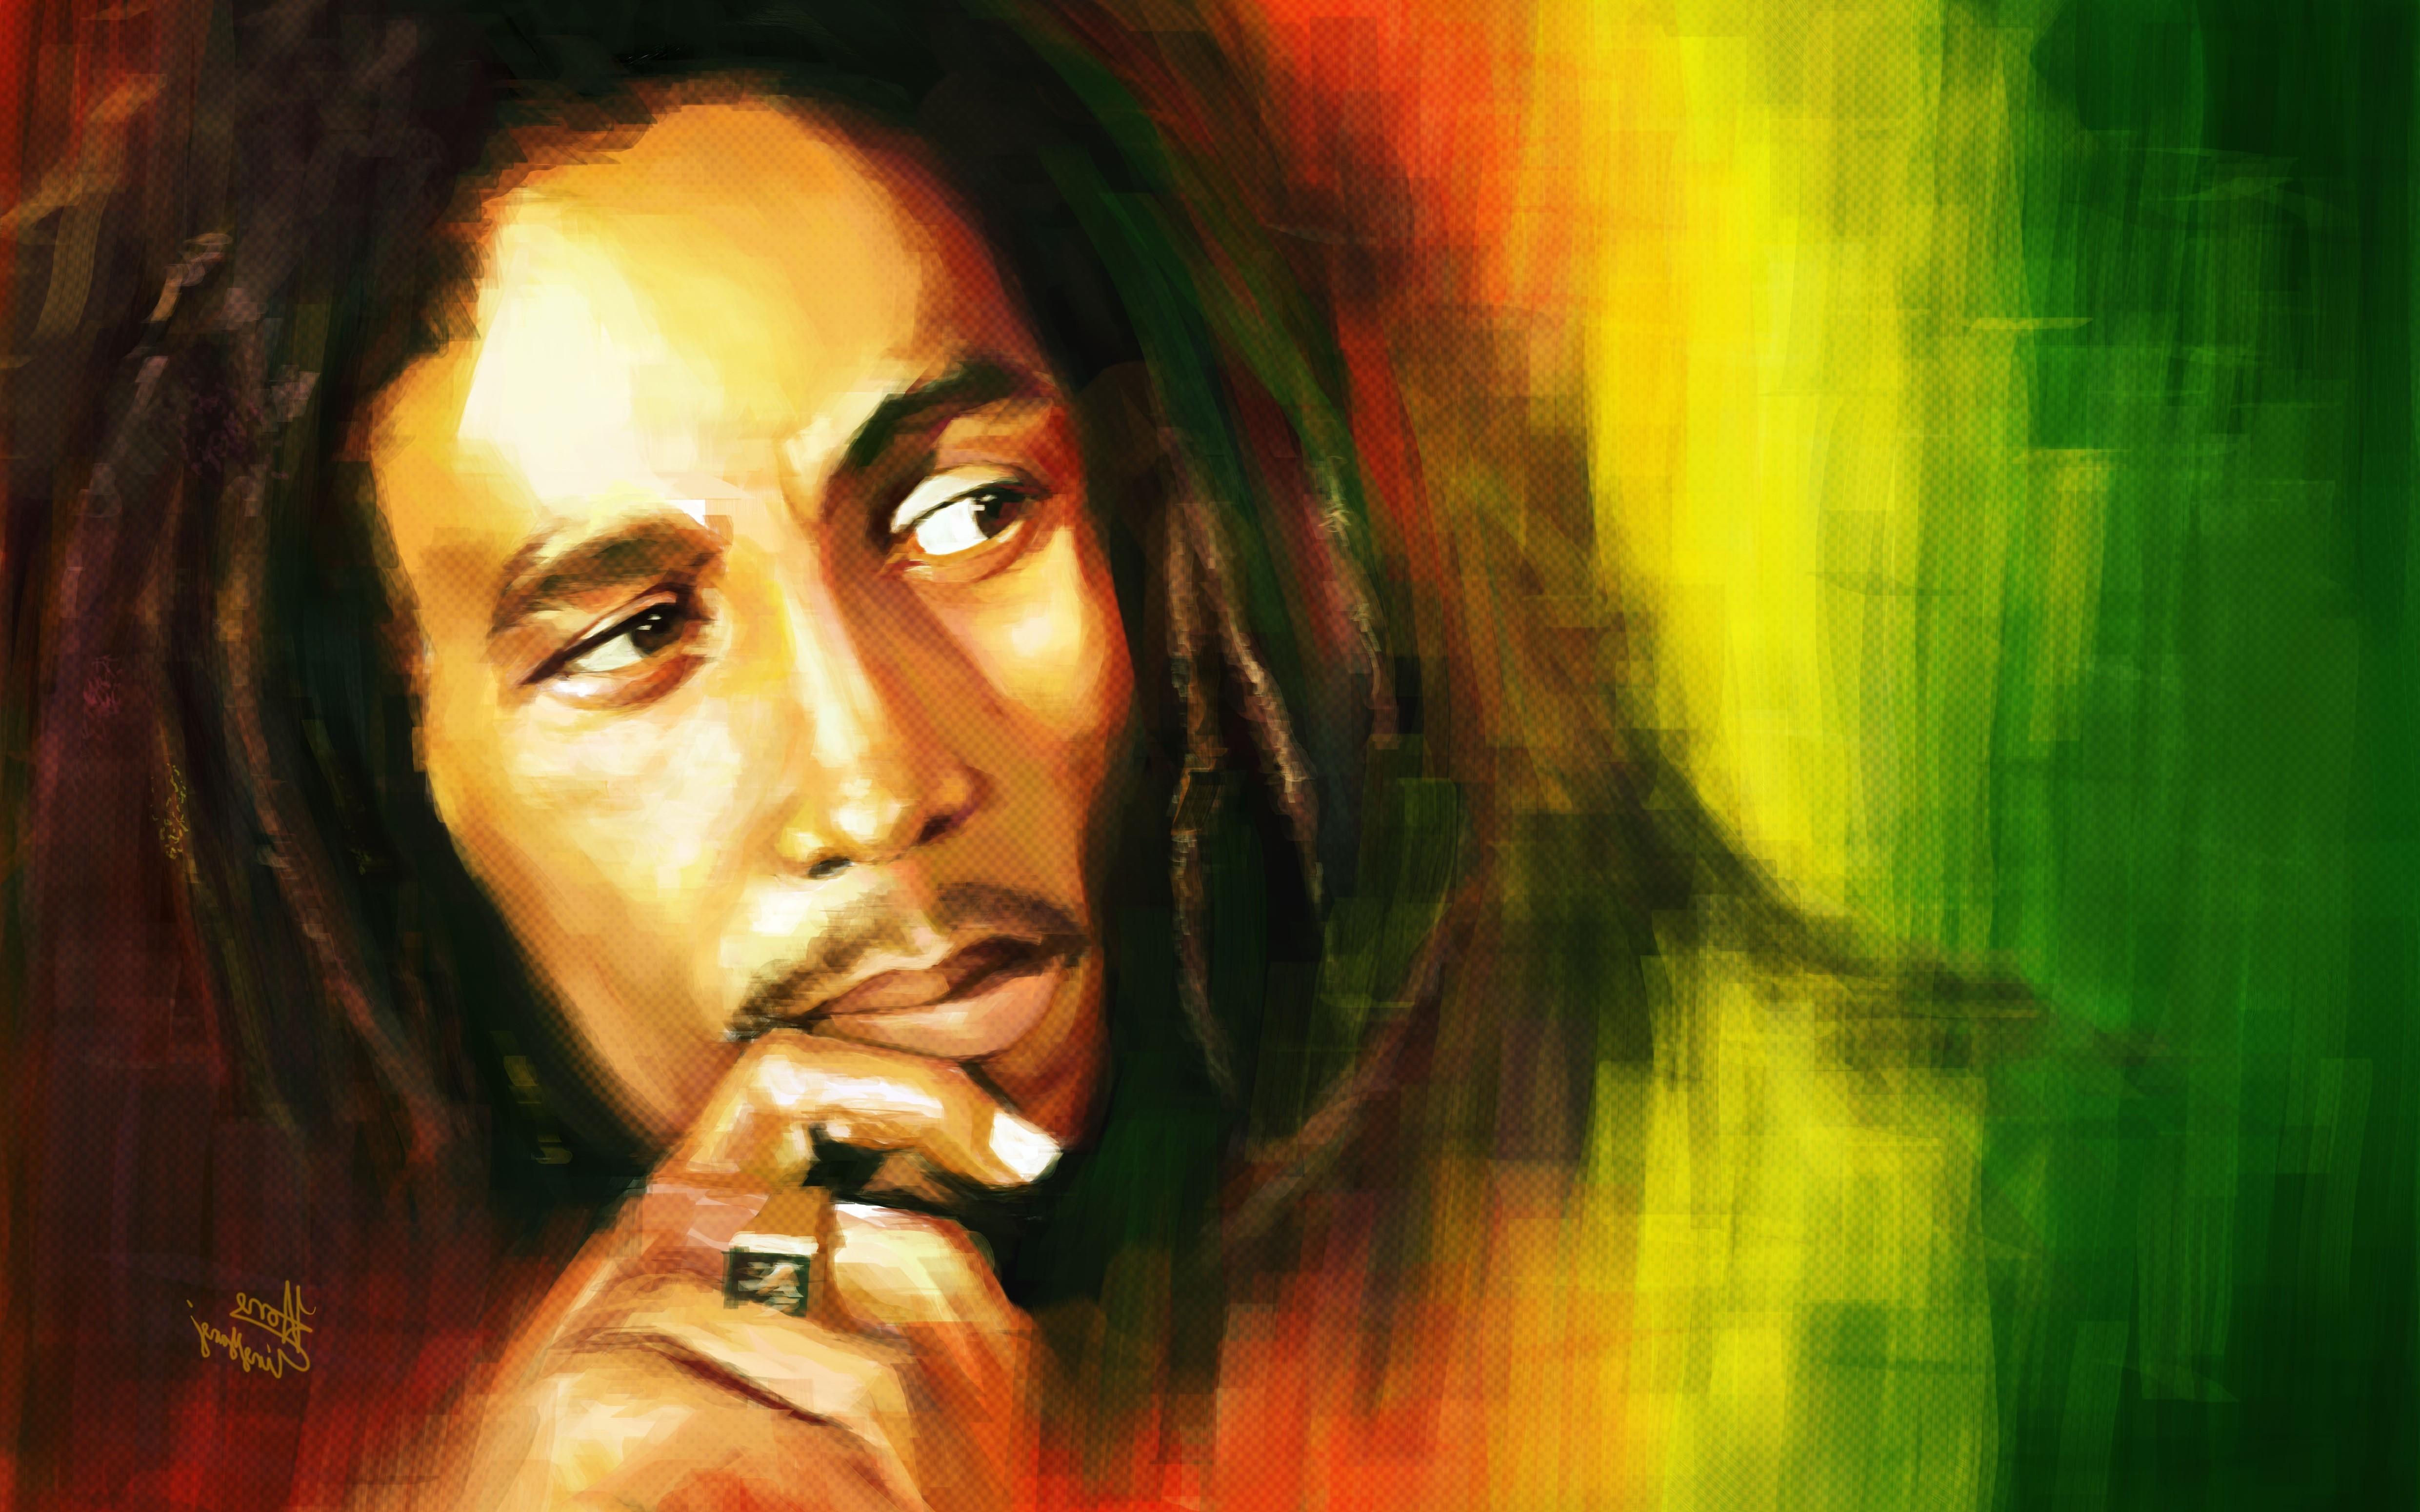 who was bob marley Read news updates about bob marley discover video clips of recent music performances and more on mtv.